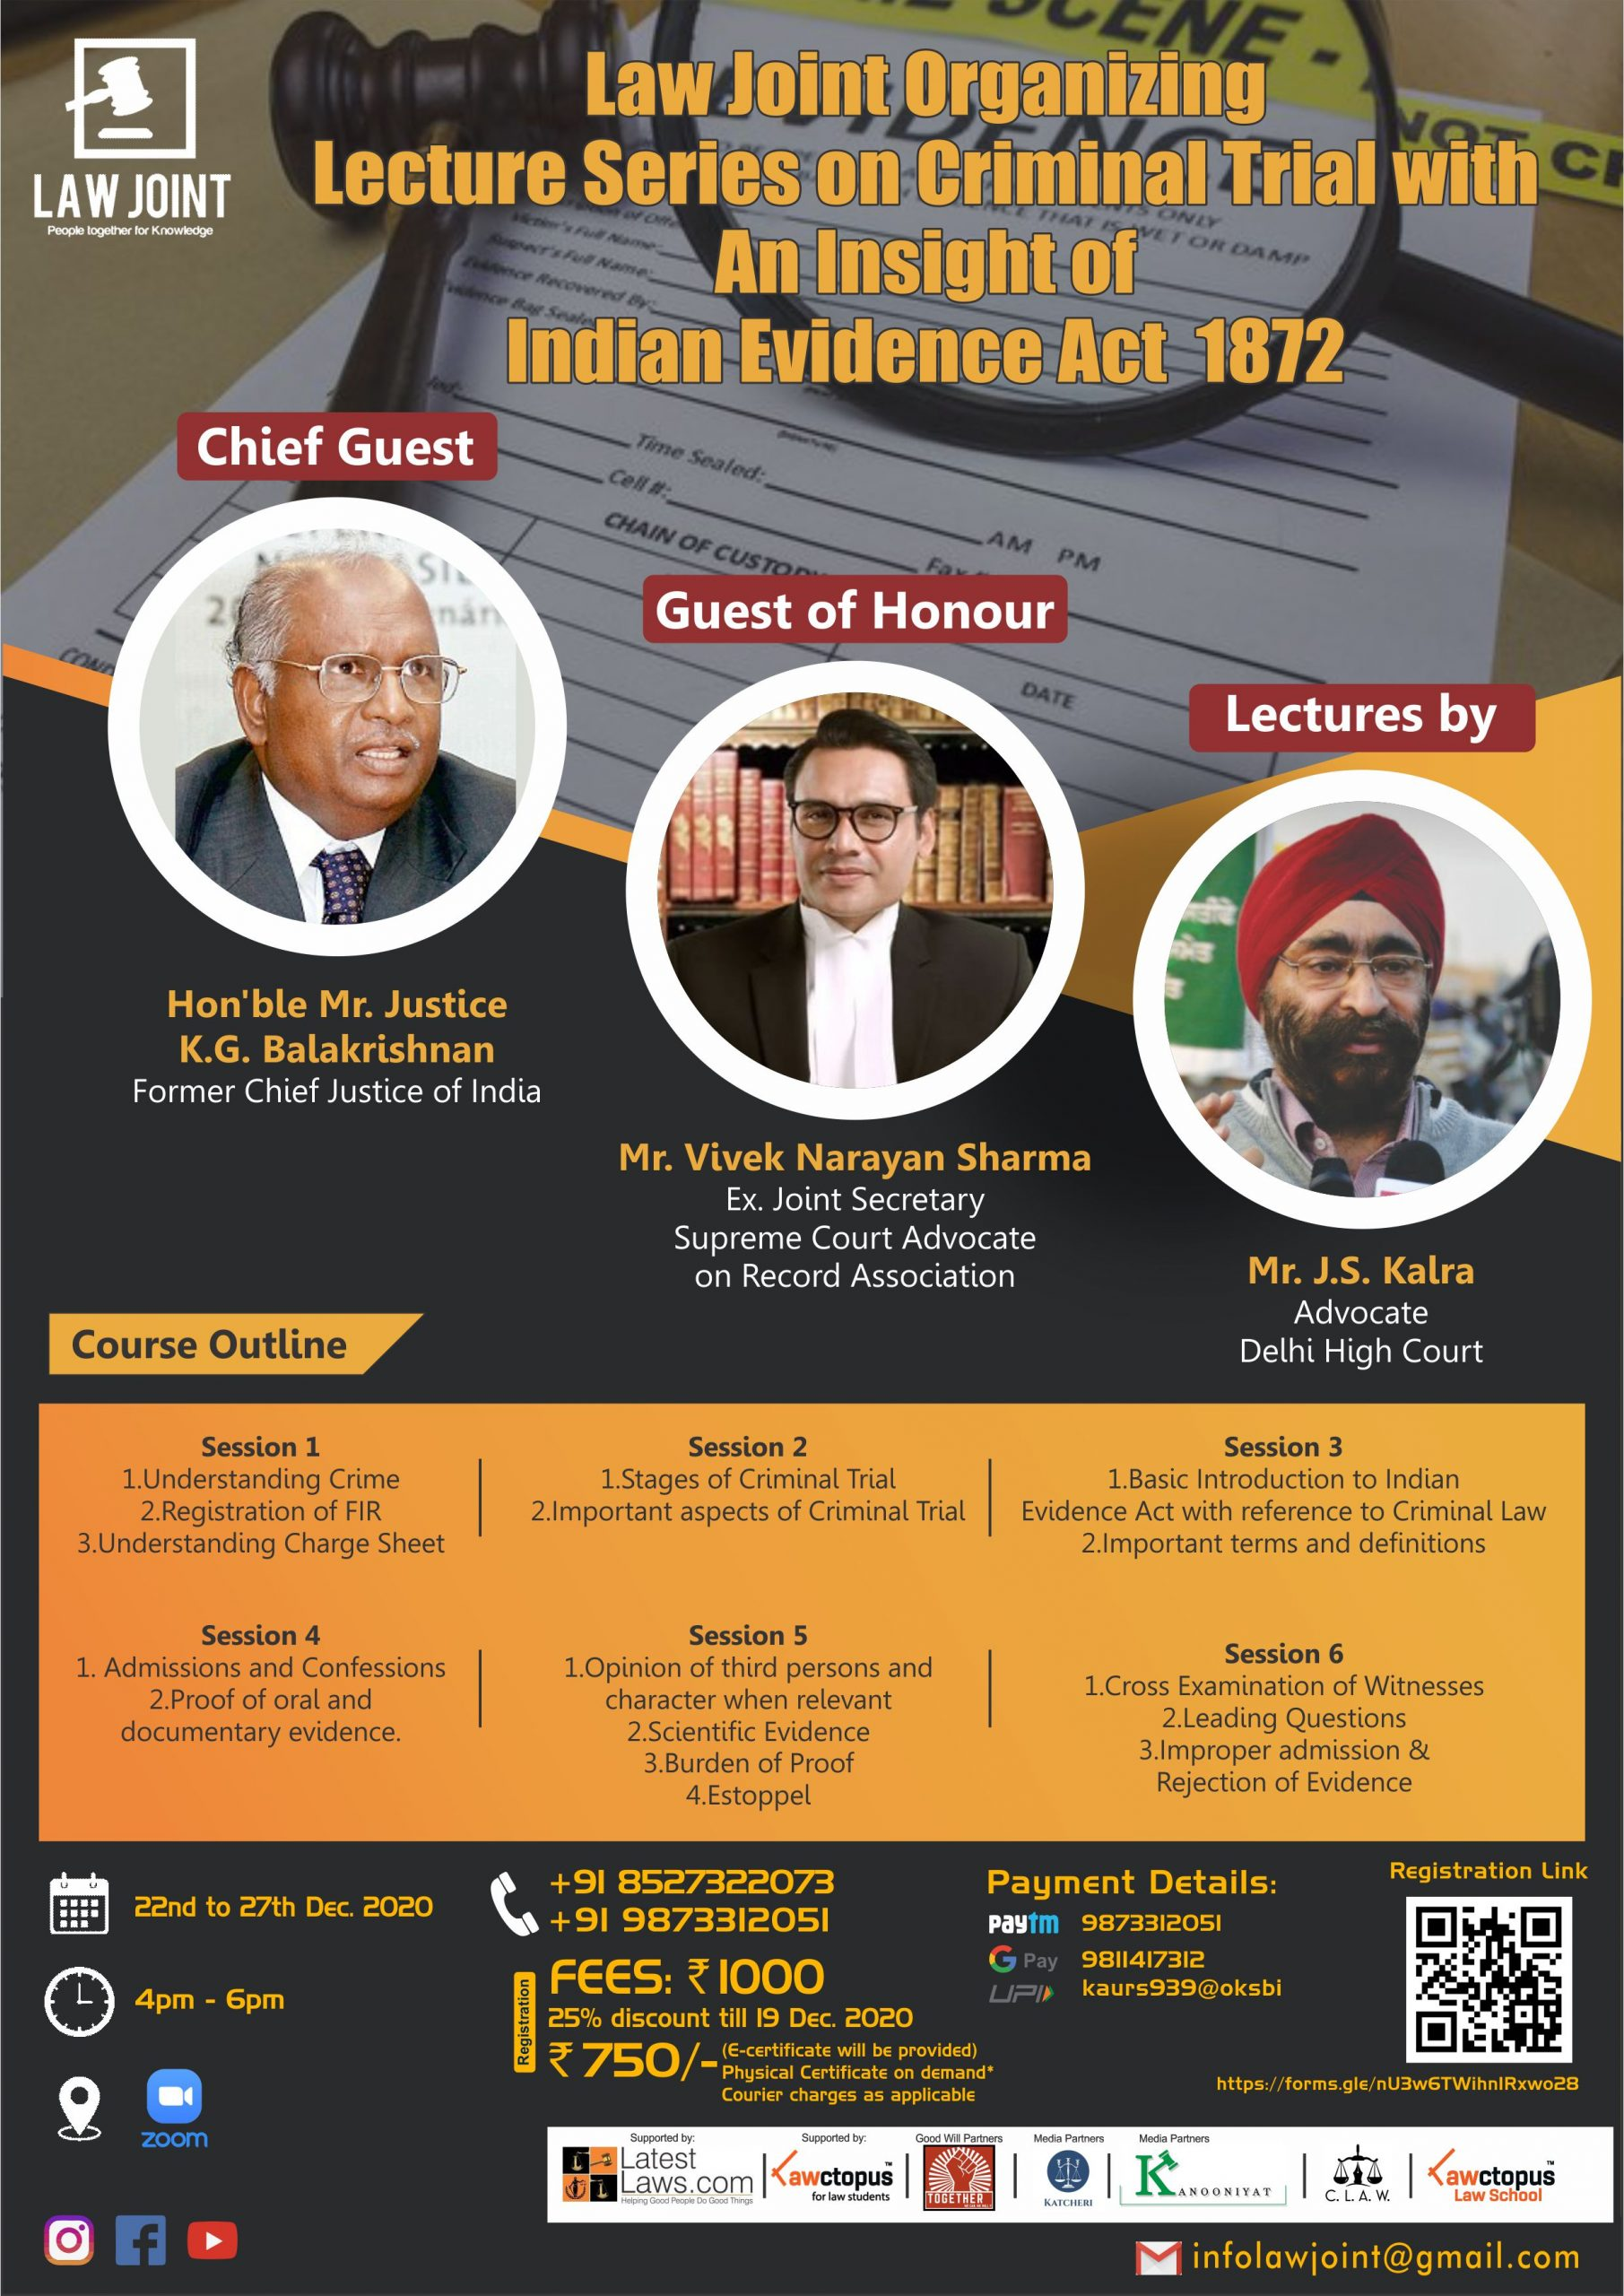 Law Joint's Lecture Series on Criminal Trial with and Insight of Indian Evidence Act